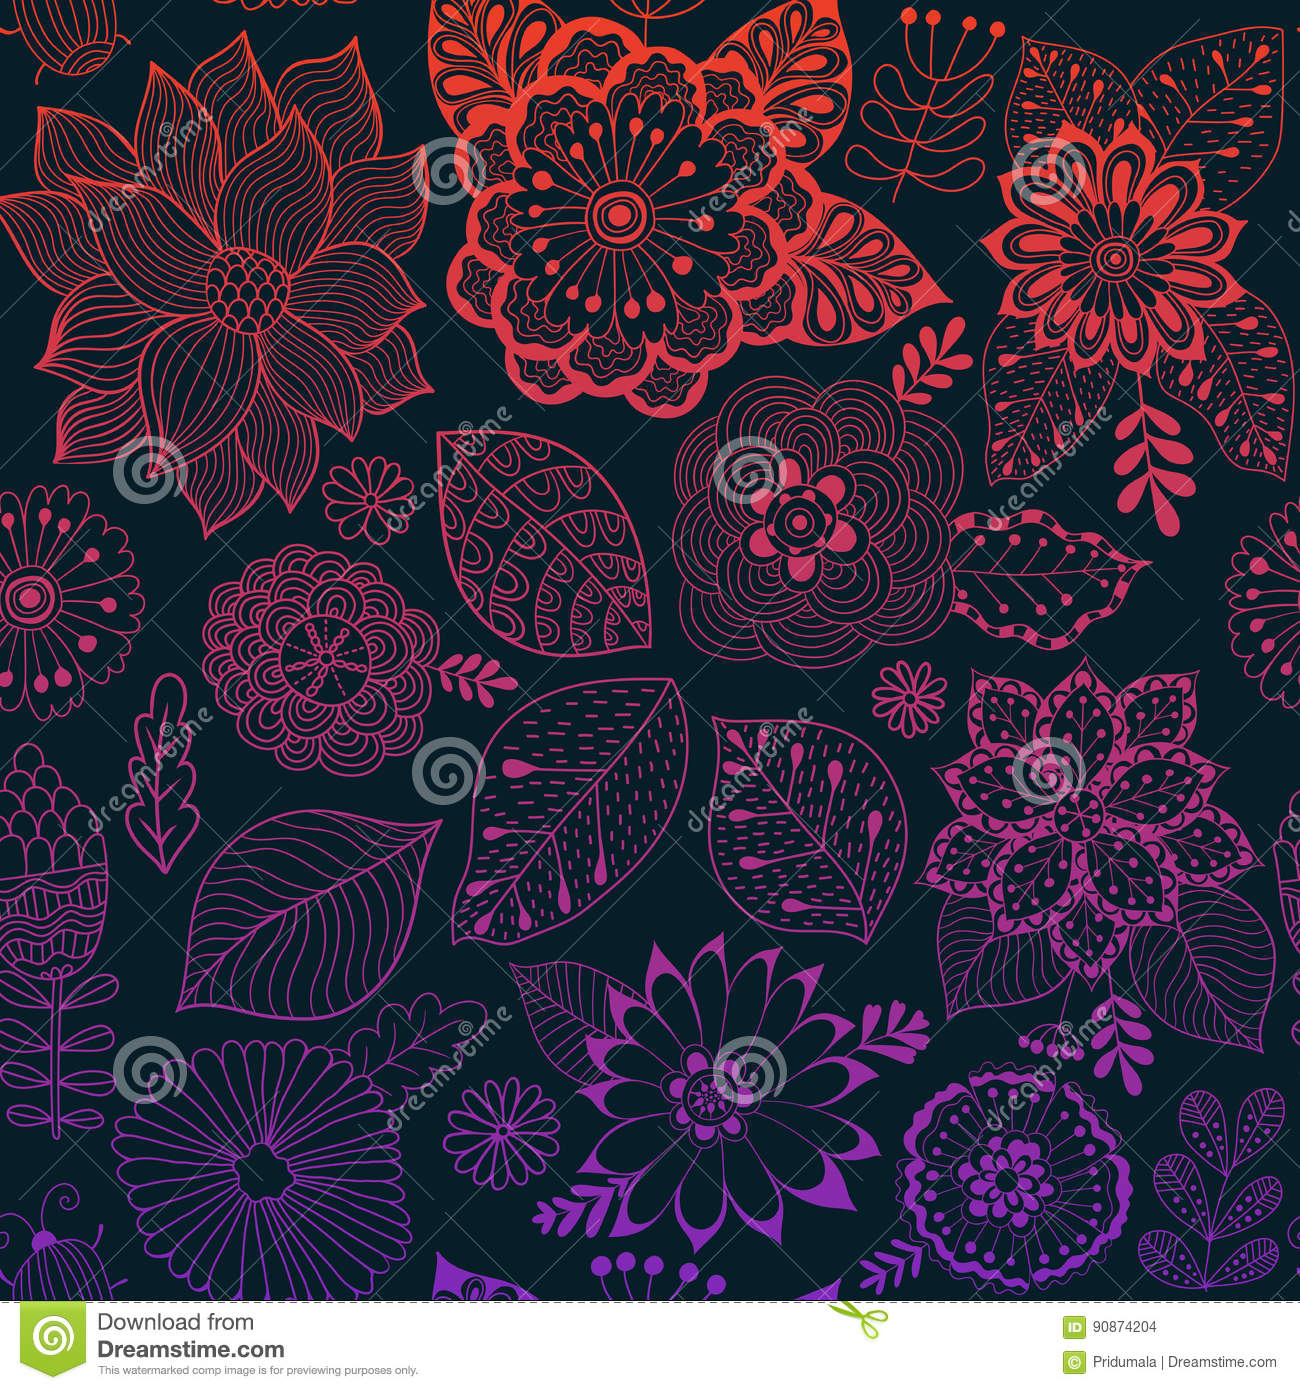 Vector flower pattern. Colorful seamless botanic texture, detailed flowers illustrations. All elements are not cropped